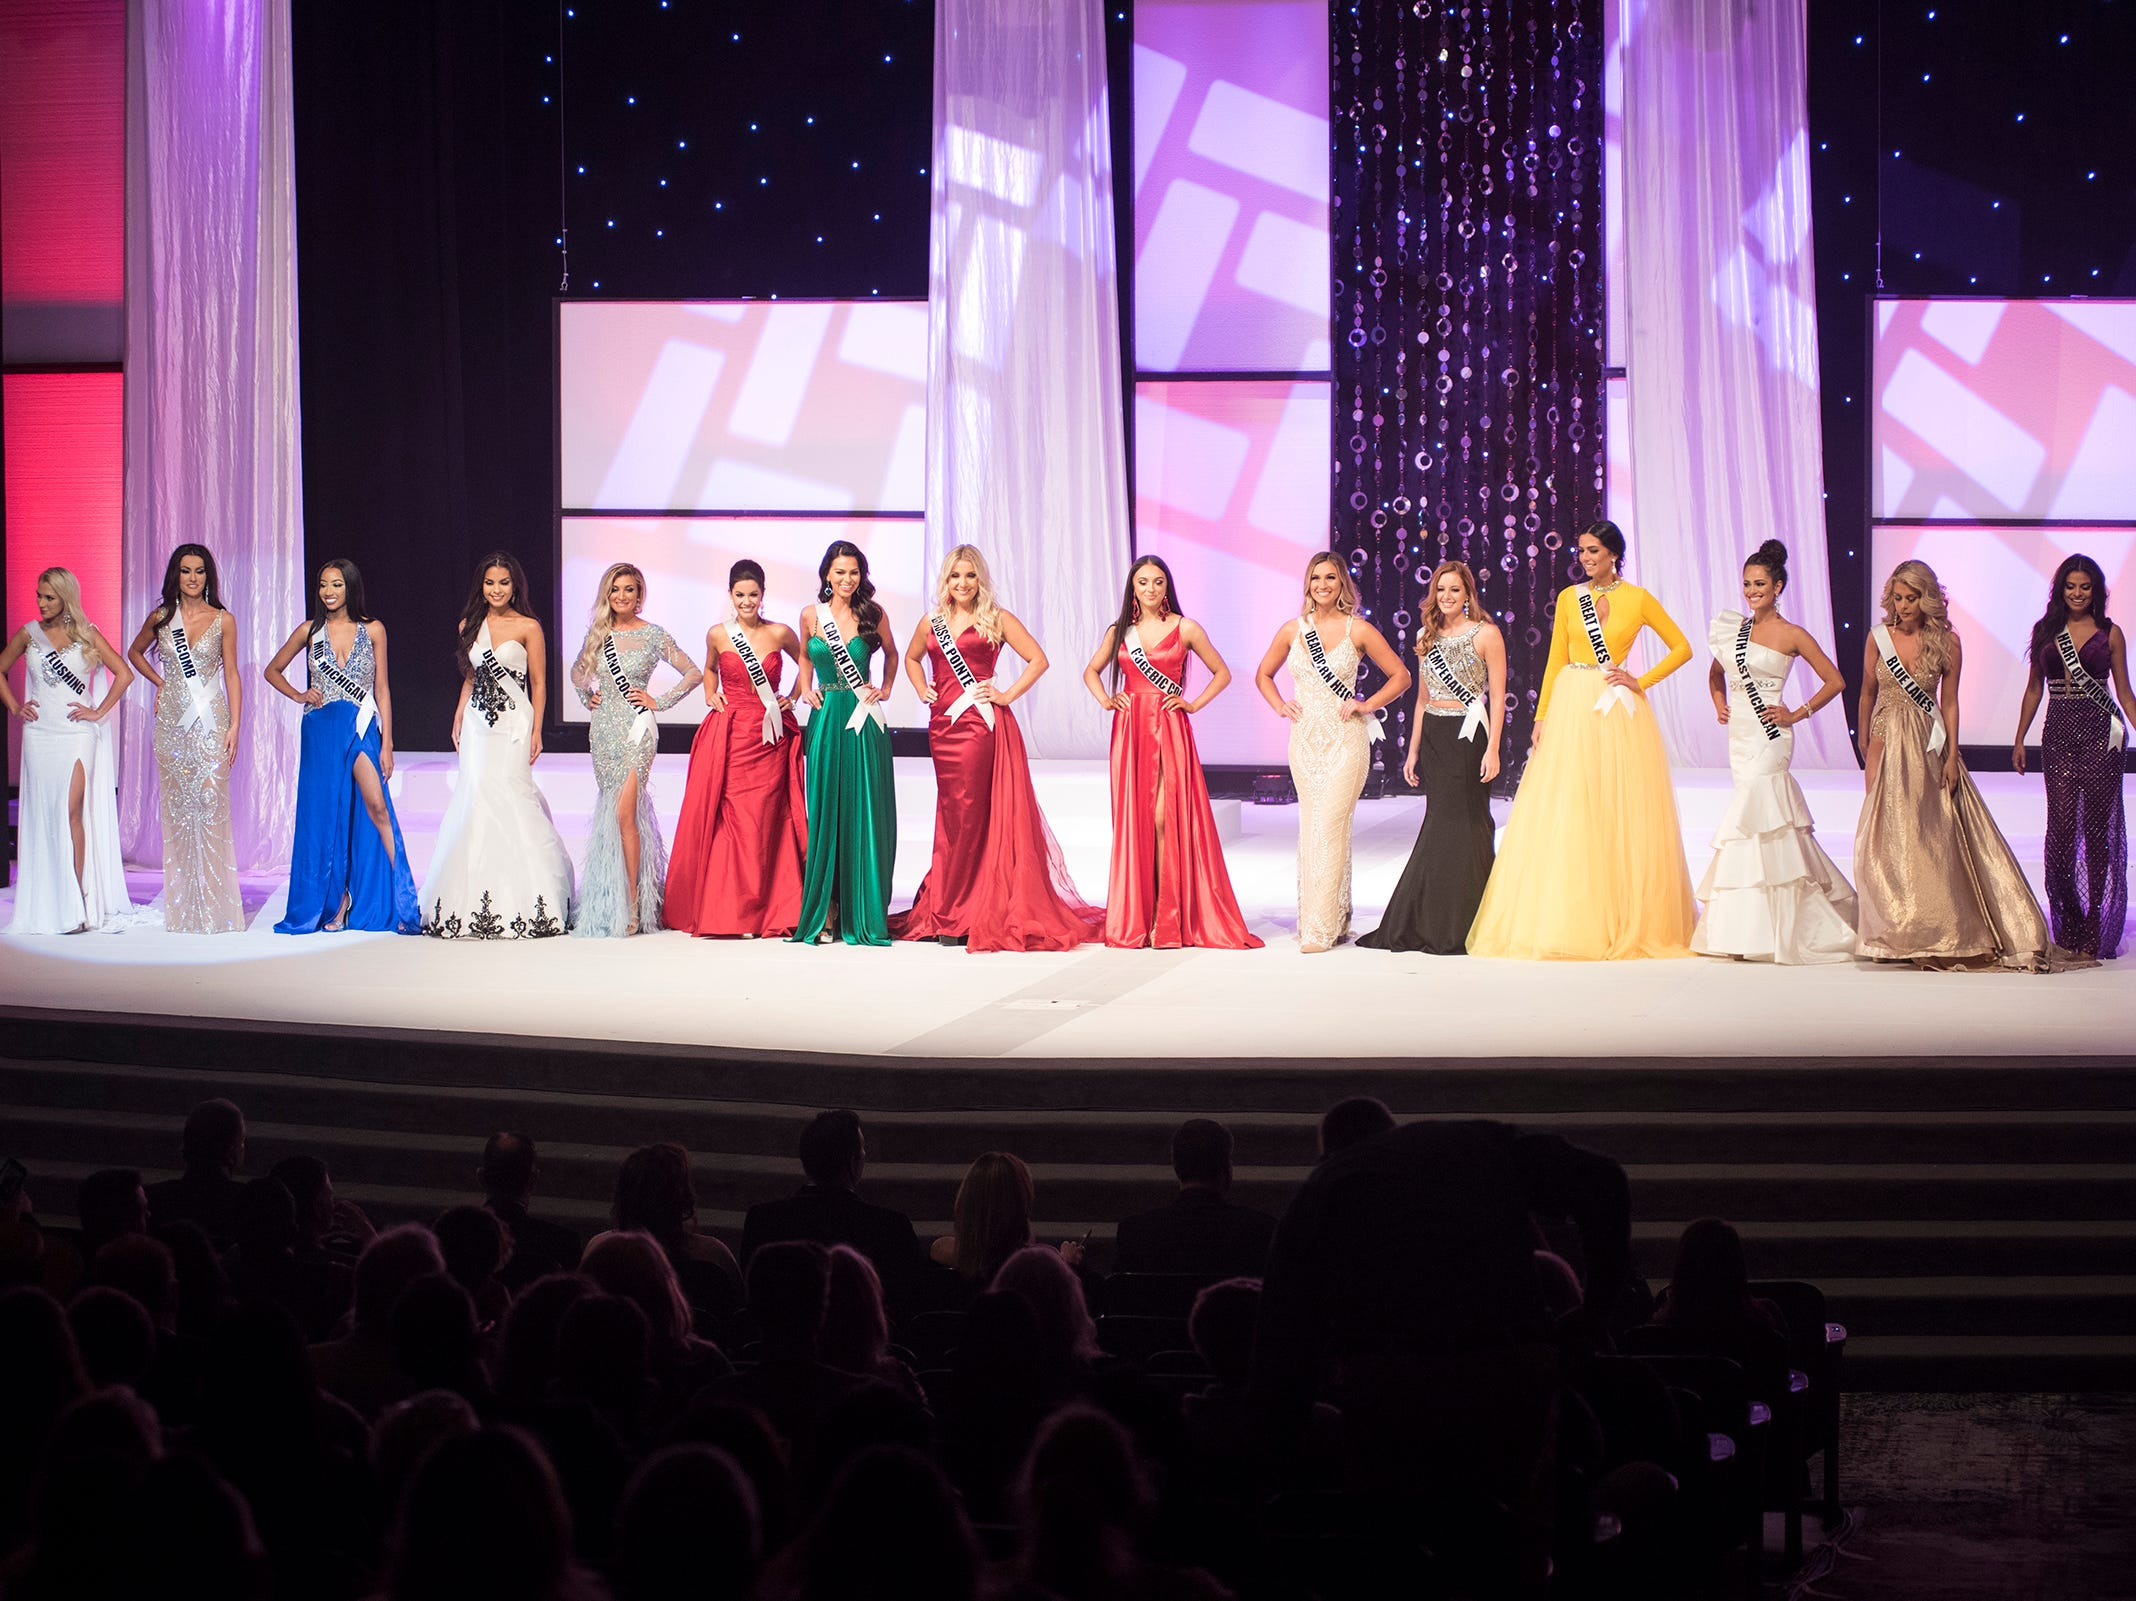 The 16 semifinalists in the Miss Michigan USA pageant line the stage after competing in the formal wear portion Saturday, Sept. 22, 2018 at McMorran Theater.